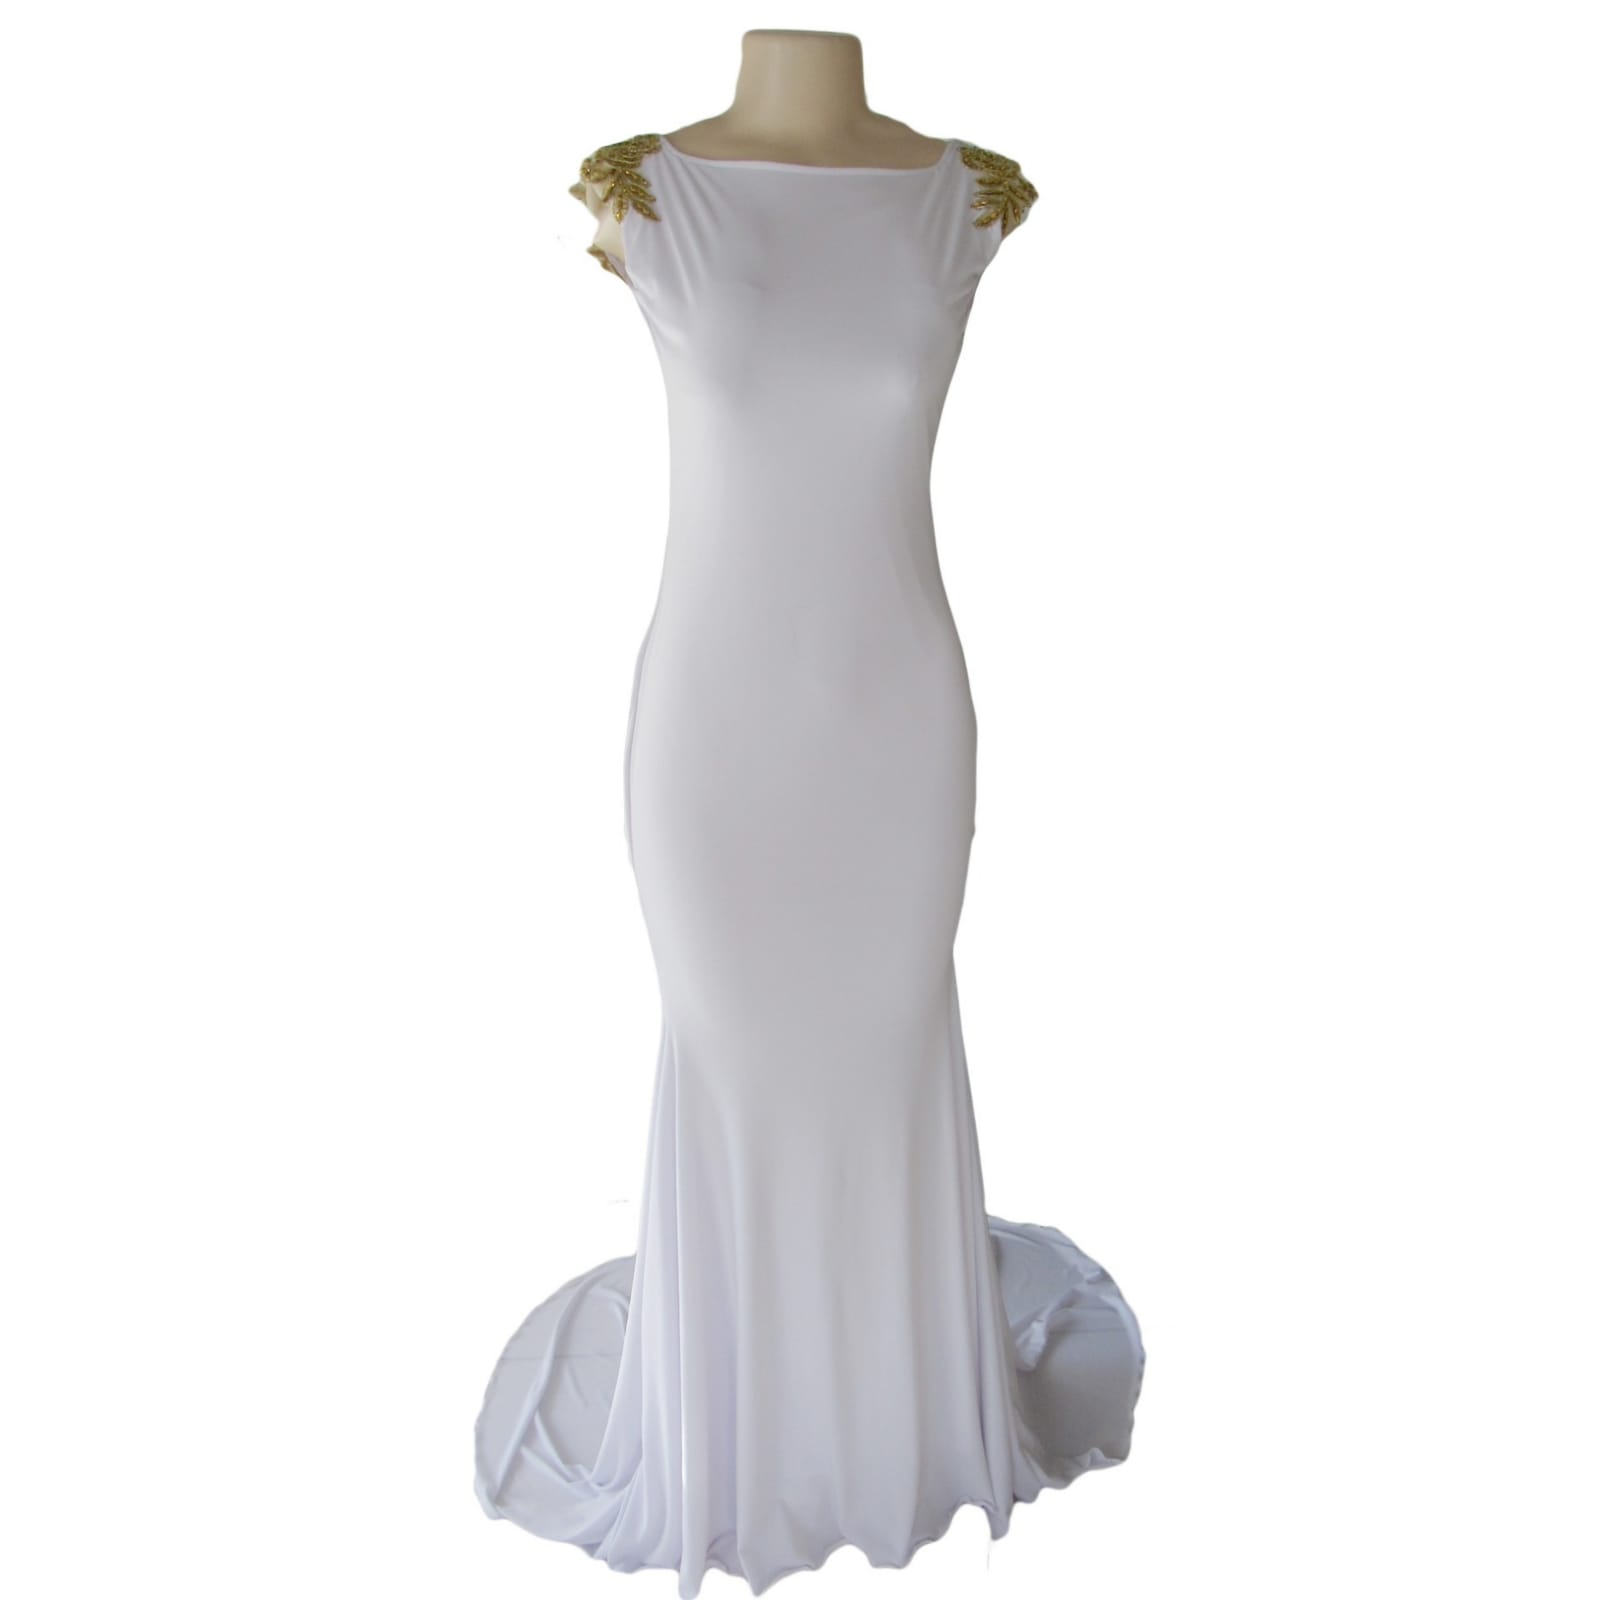 White long jewel neckline matric farewell dress with a rounded open back 5 white long jewel neckline matric farewell dress with a rounded open back, detailed with gold chains, shoulders detailed with gold lace.